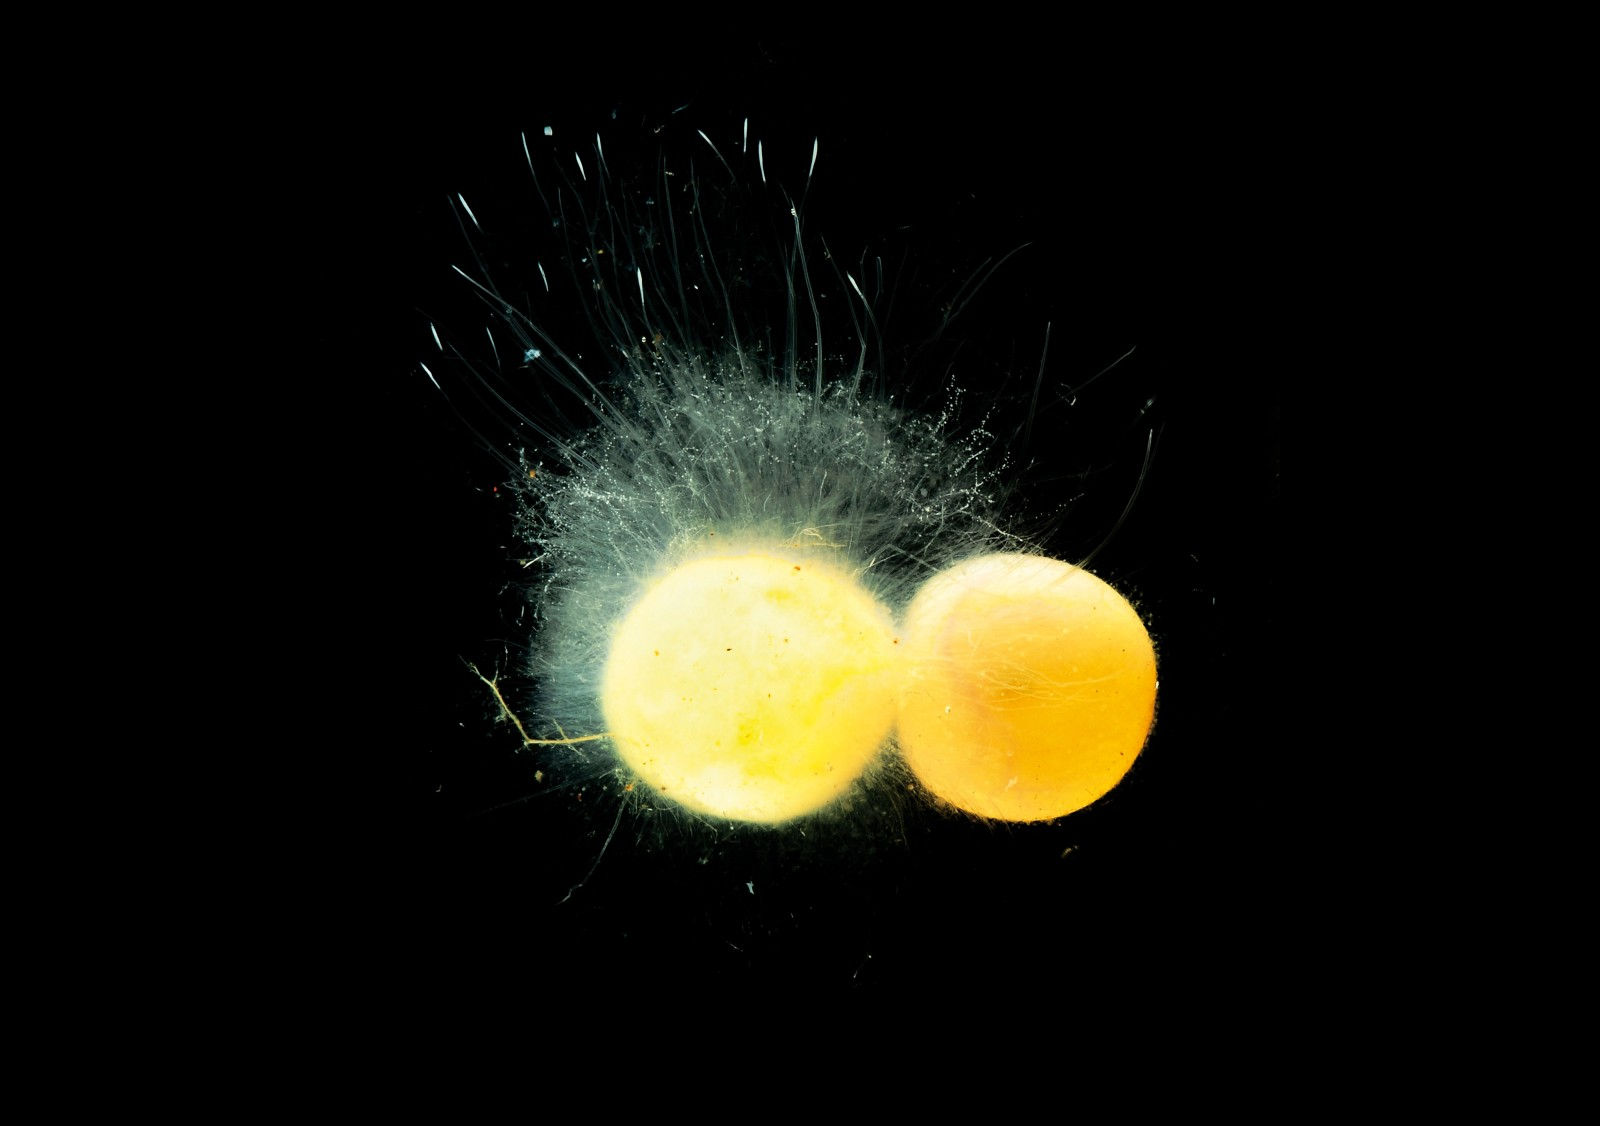 Even in the first days of life, the eggs are vulnerable. Those that are invalid at laying can become infested with Saprolegnia, a cotton wool-like fungus that can spread to healthy eggs also, sometimes resulting in the death of the whole clutch.